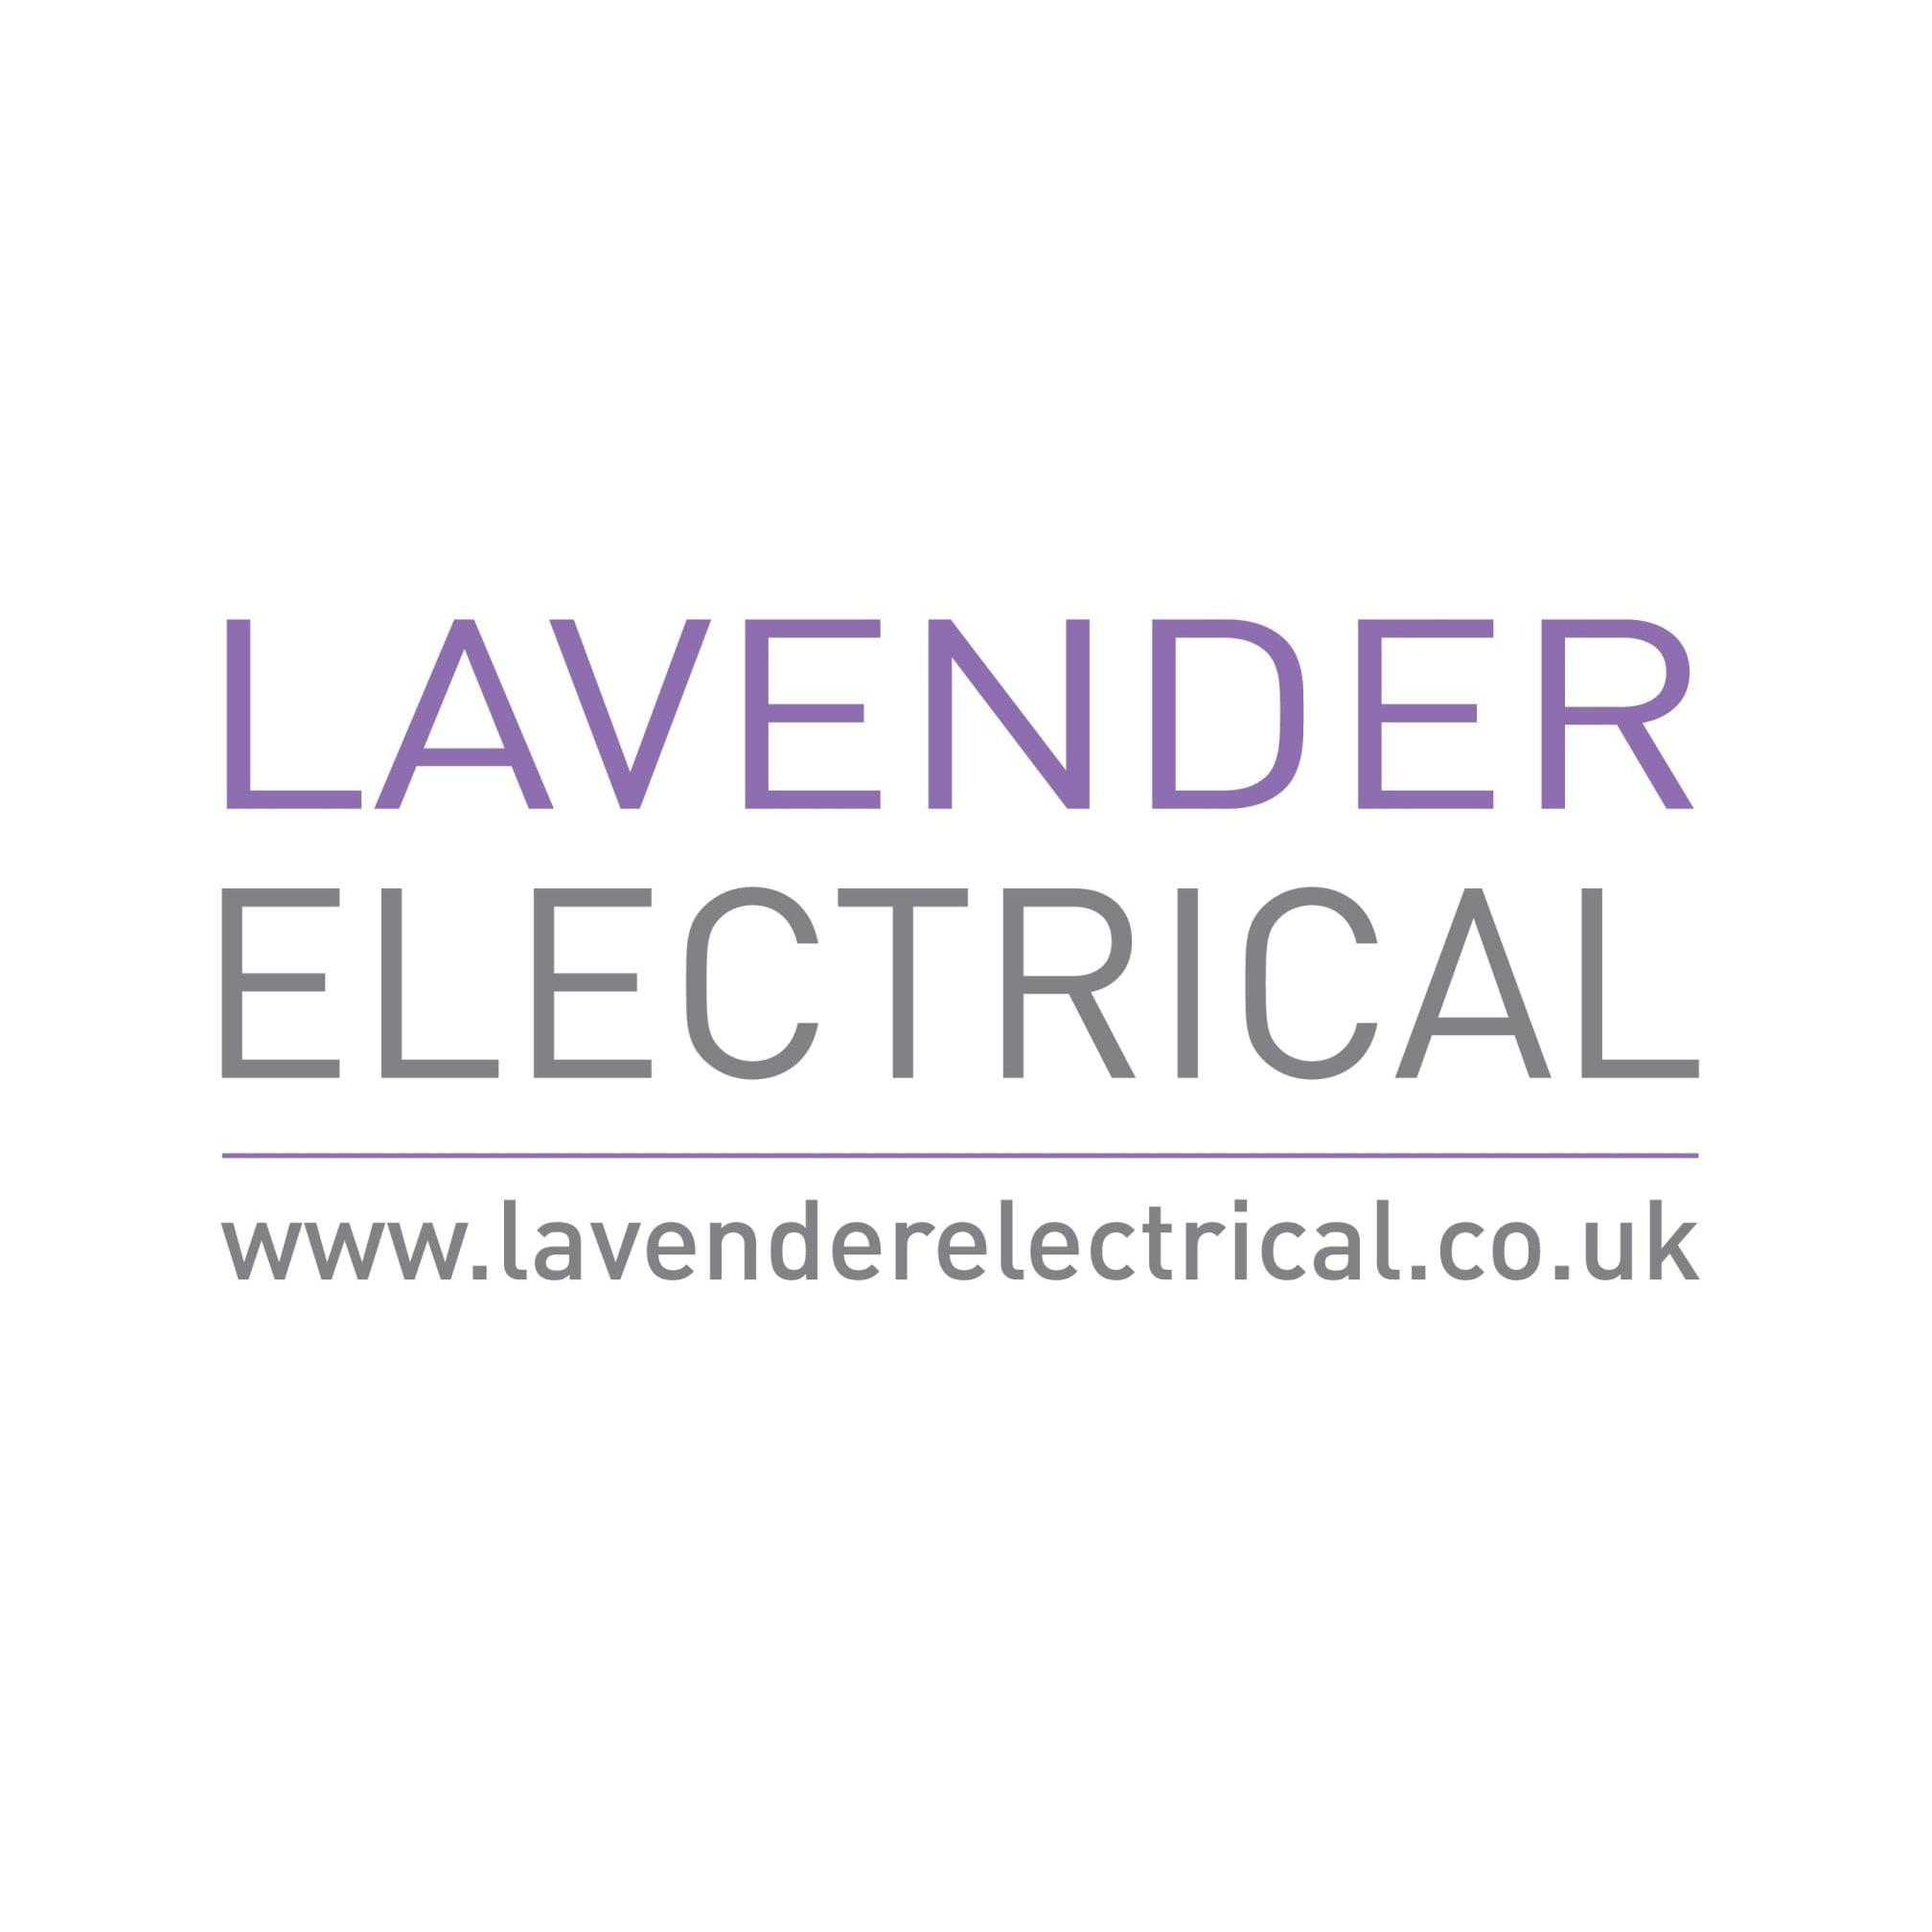 Lavender Electrical Ltd - Dartford, Kent DA1 5AN - 01322 761000 | ShowMeLocal.com